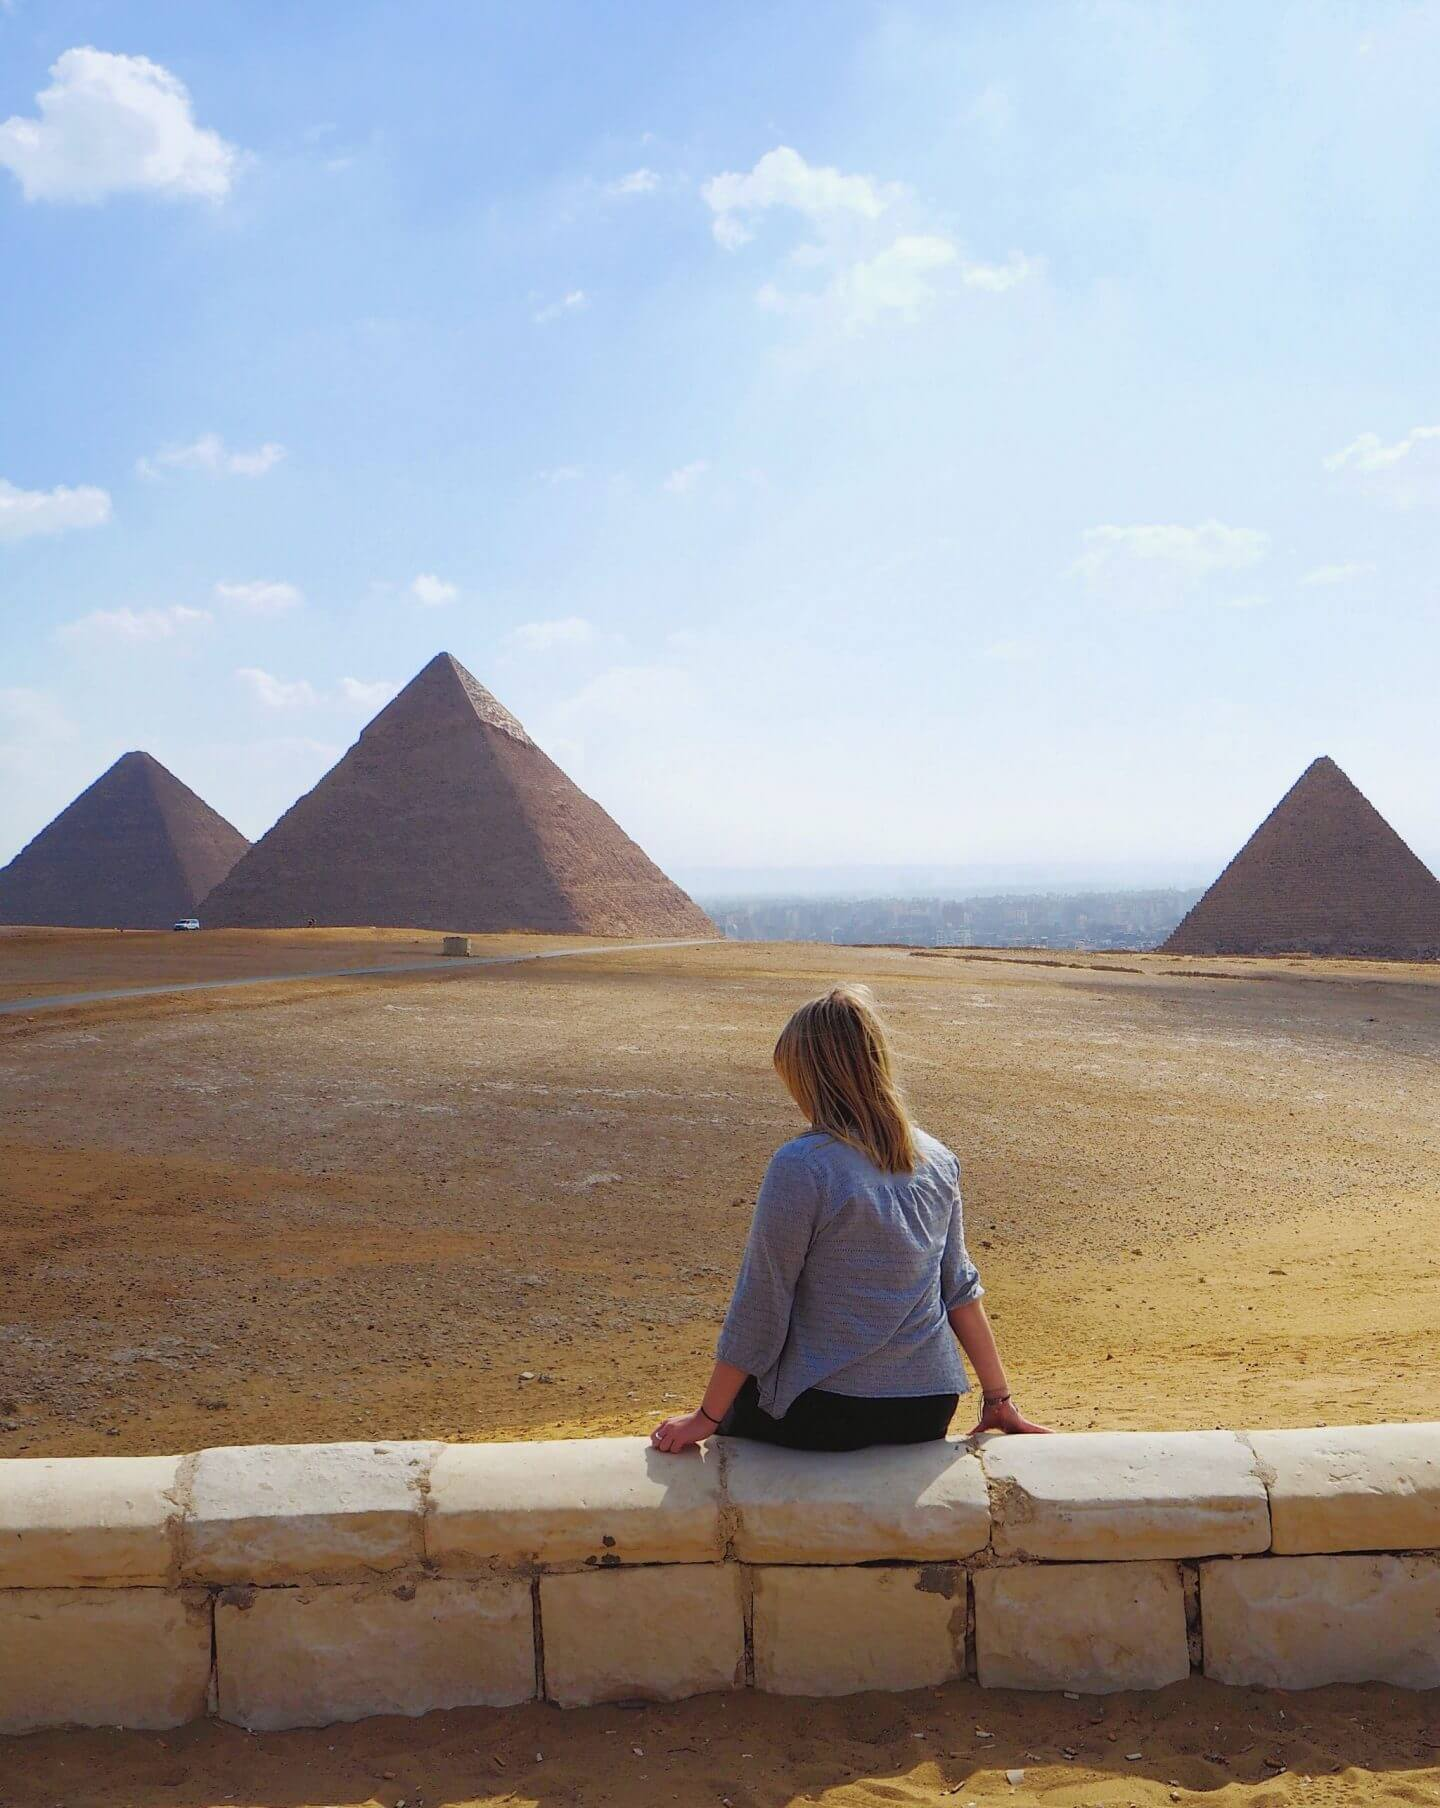 Image of Pyramids of Giza from Ultimate Travelist